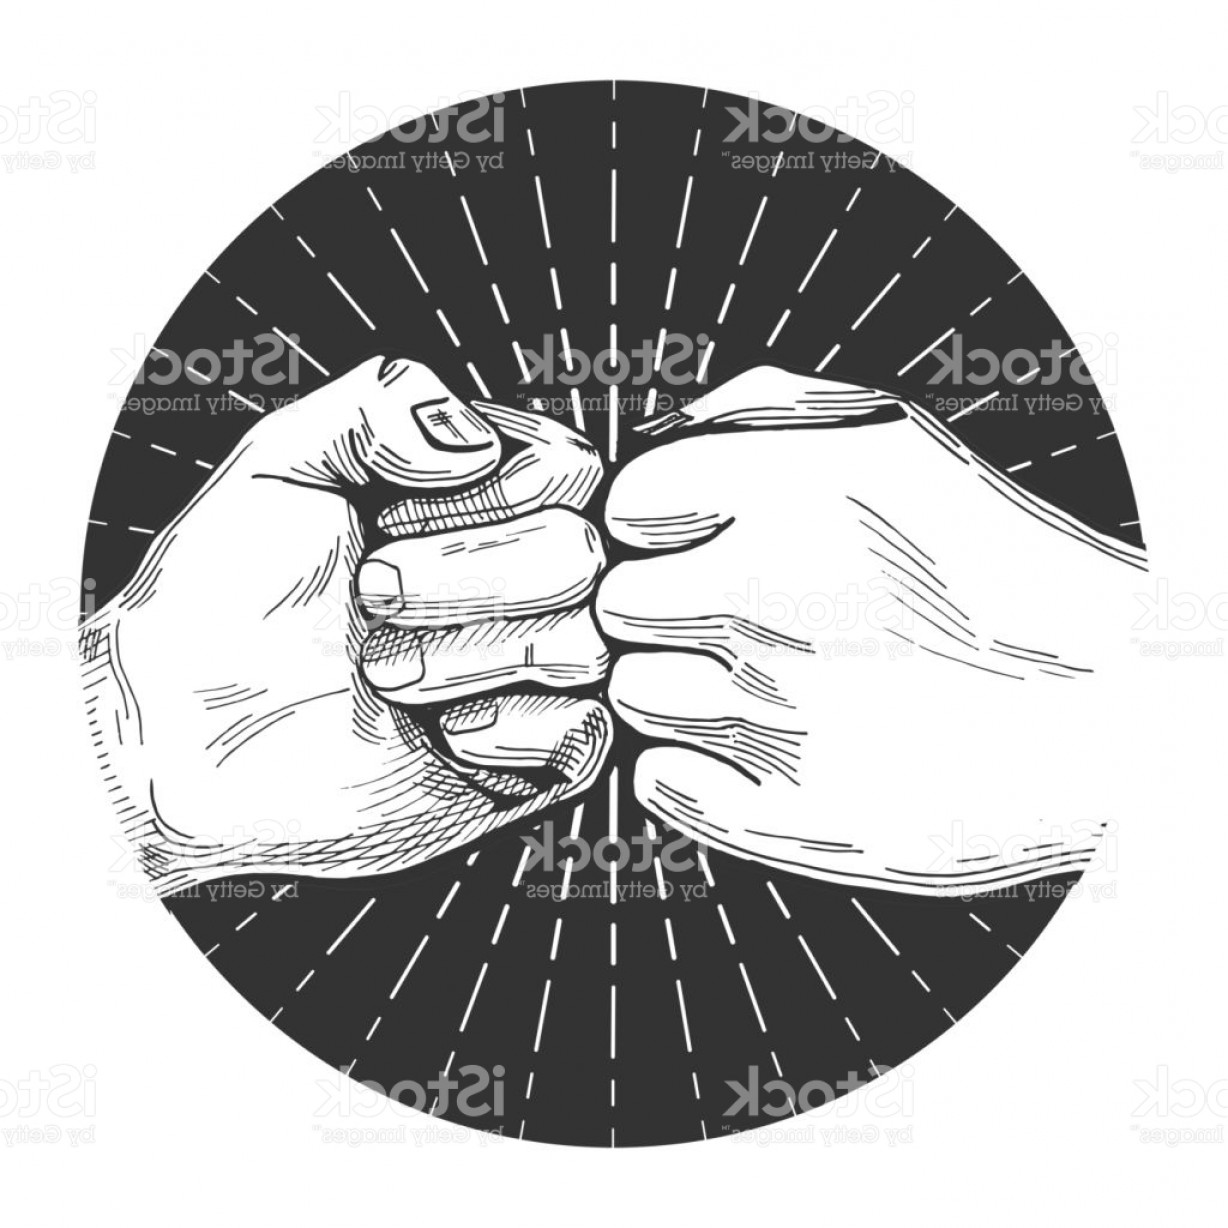 Emoji Fist Bump Vector Graphic: Hand Drawn Fist Bump Gm